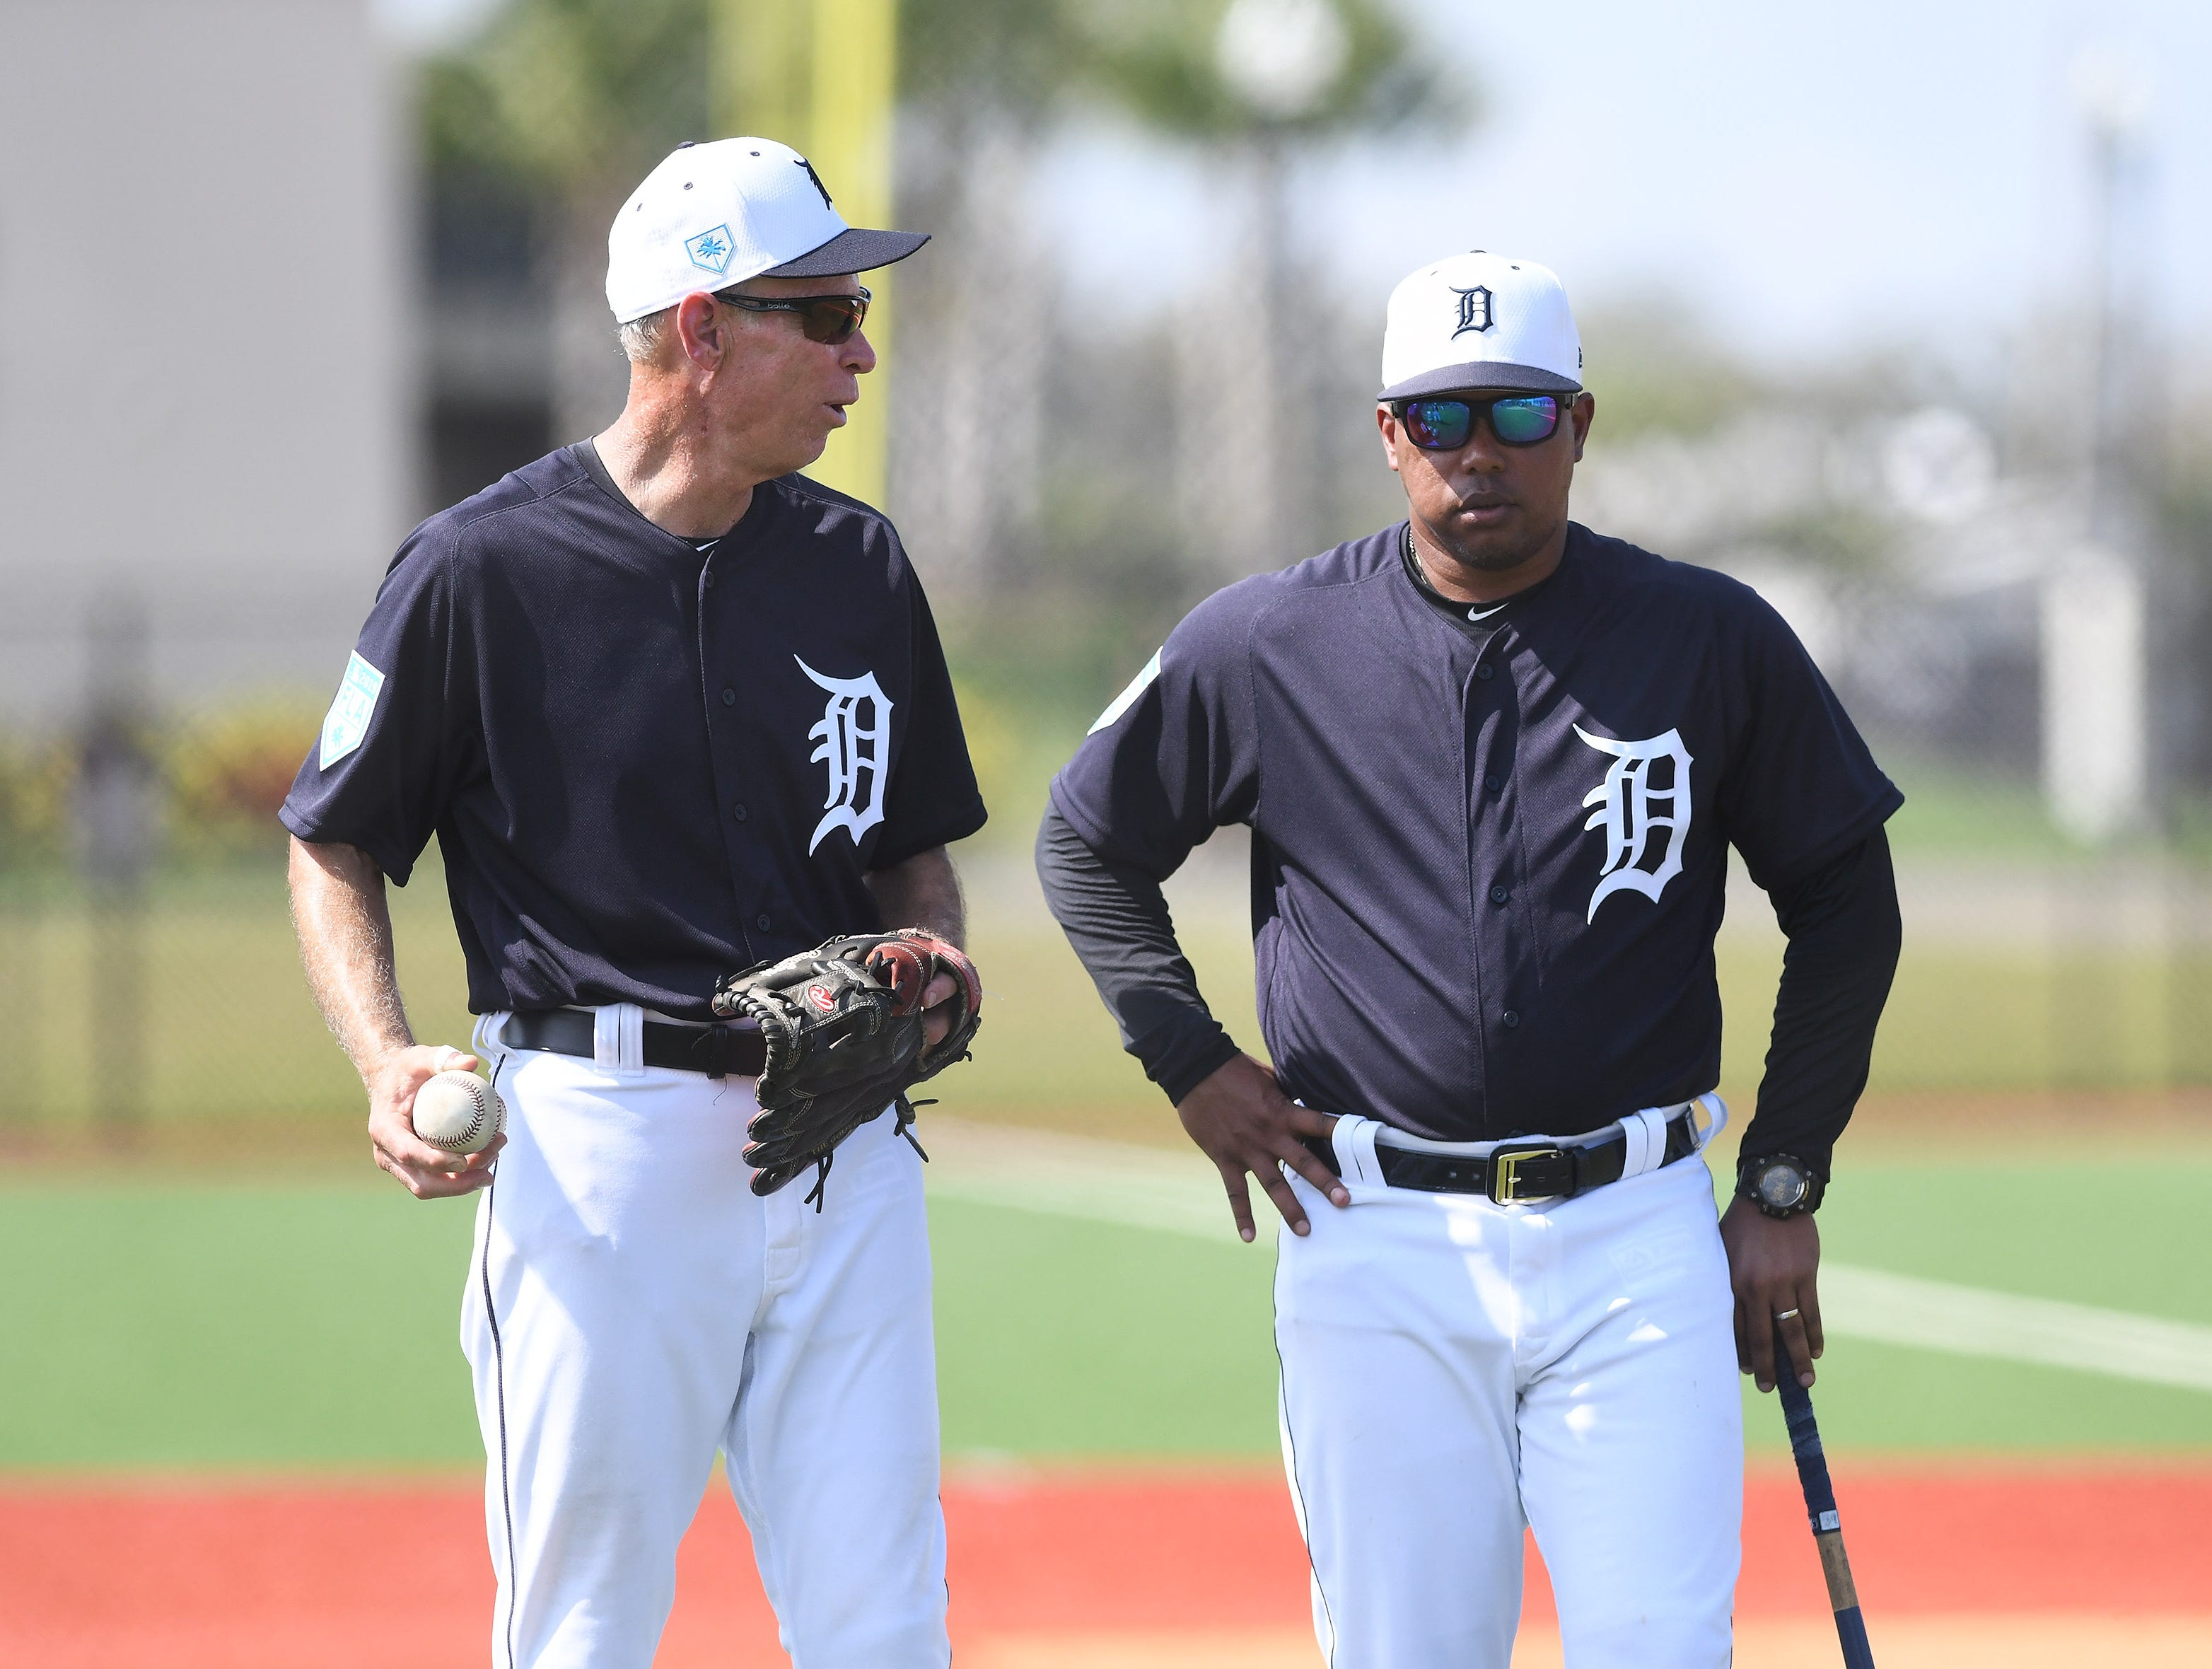 Tigers special assistant to the general manager Alan Trammell, left, talks with first base coach Ramon Santiago at the Tigers workout.